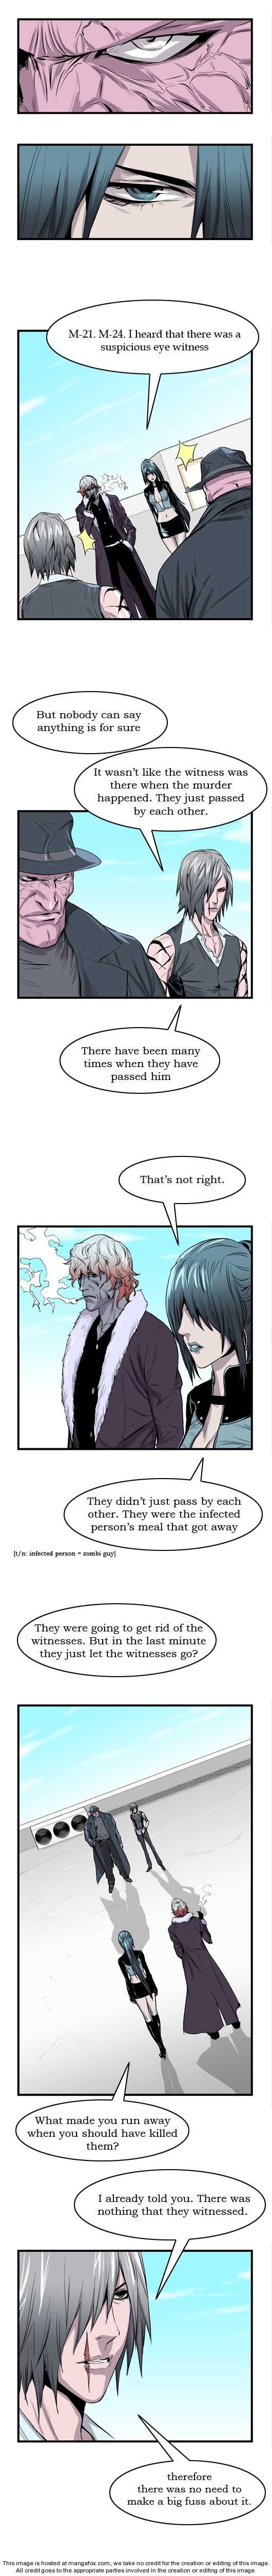 Noblesse 41 Page 3